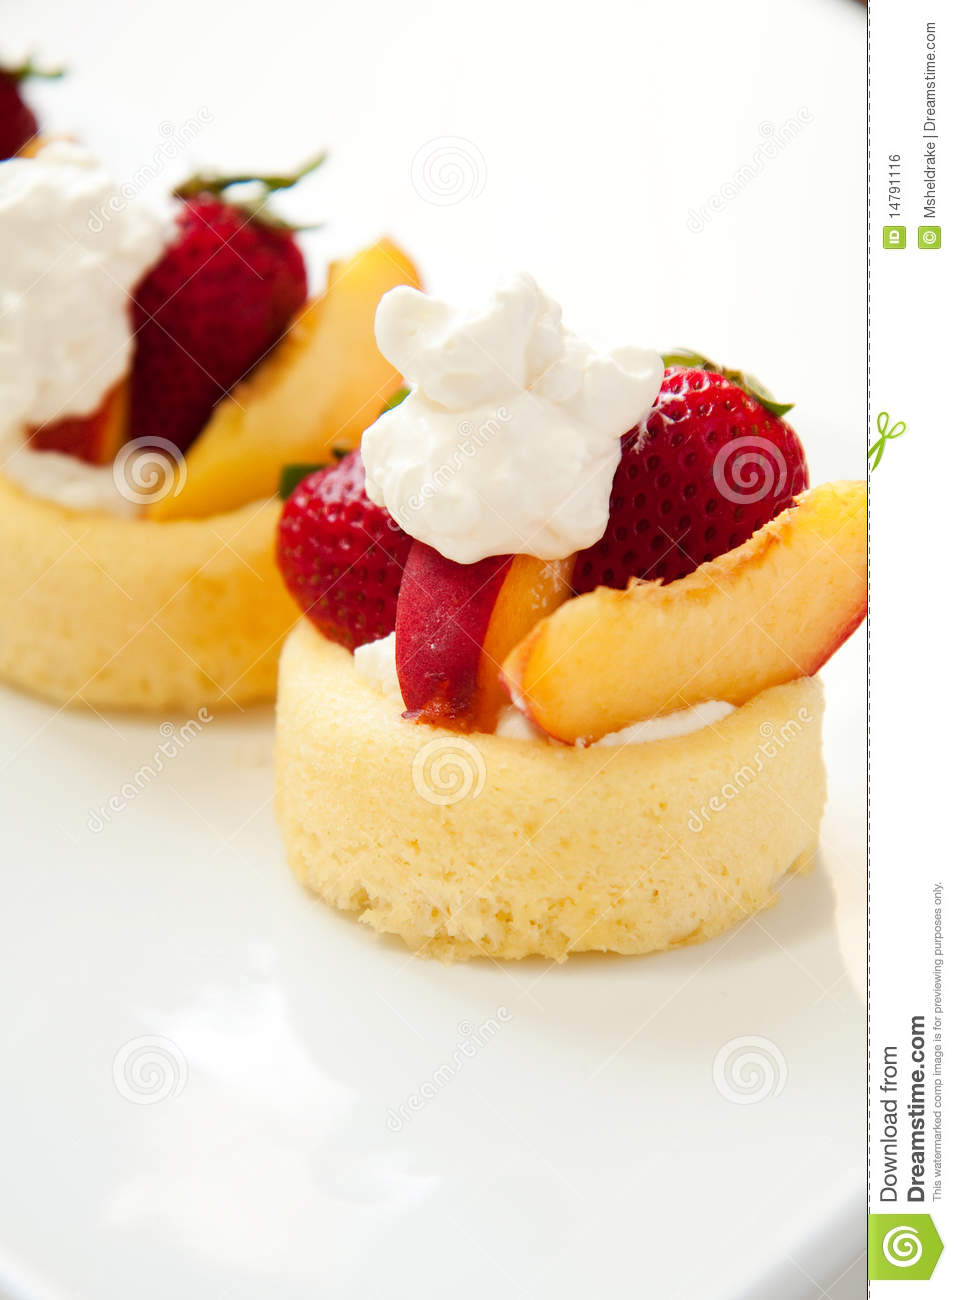 simple summer fruit dessert royalty free stock image image 14791116